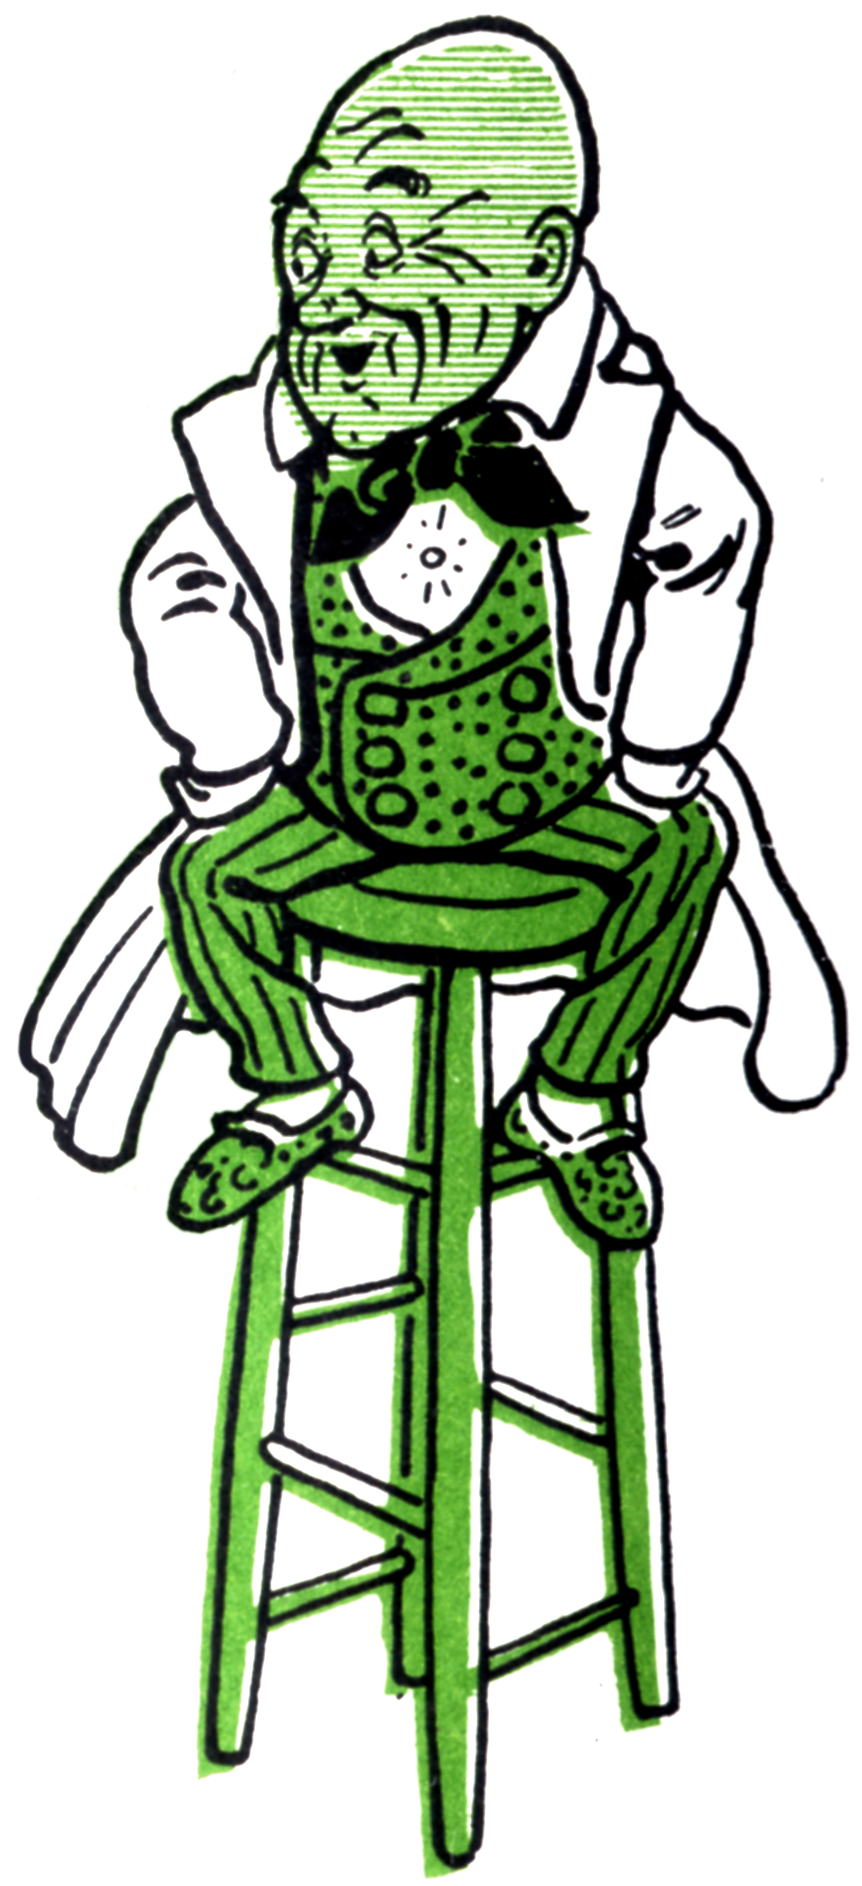 A drawing of the Wizard of Oz sitting on a stool.